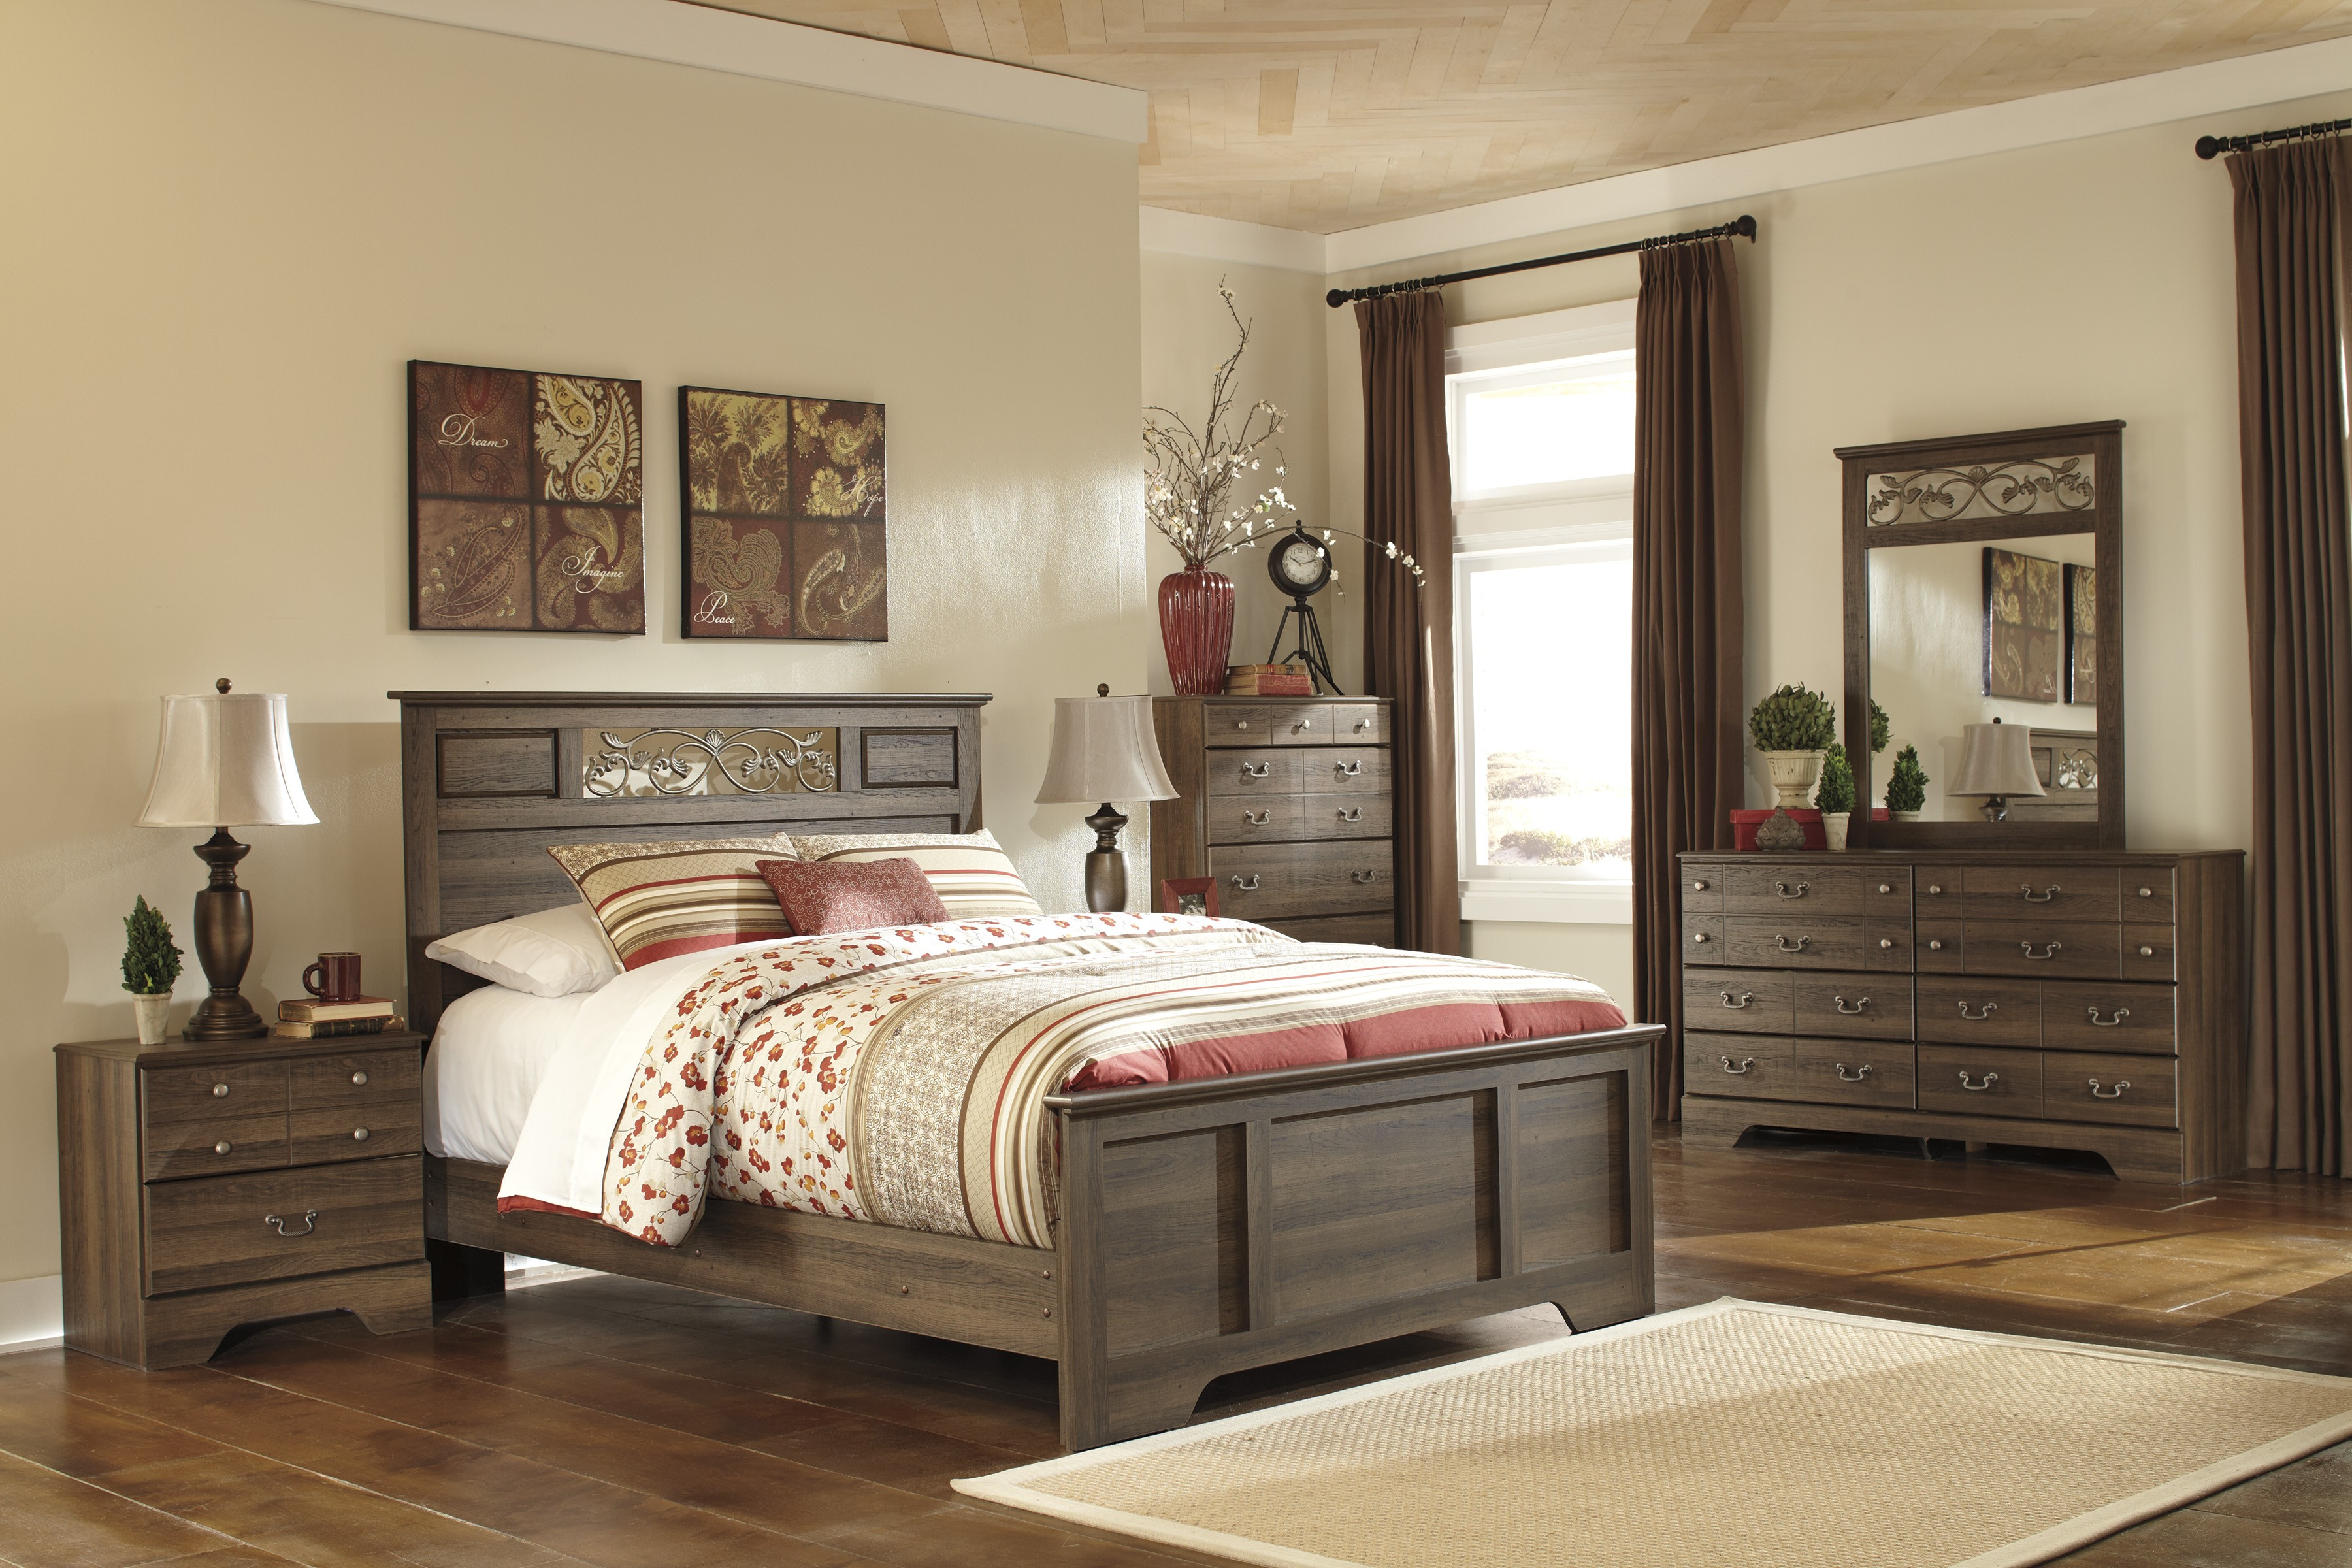 Allymore Panel Bedroom Set from Ashley  B216 55 51 98    Coleman Furniture. Allymore Panel Bedroom Set from Ashley  B216 55 51 98    Coleman